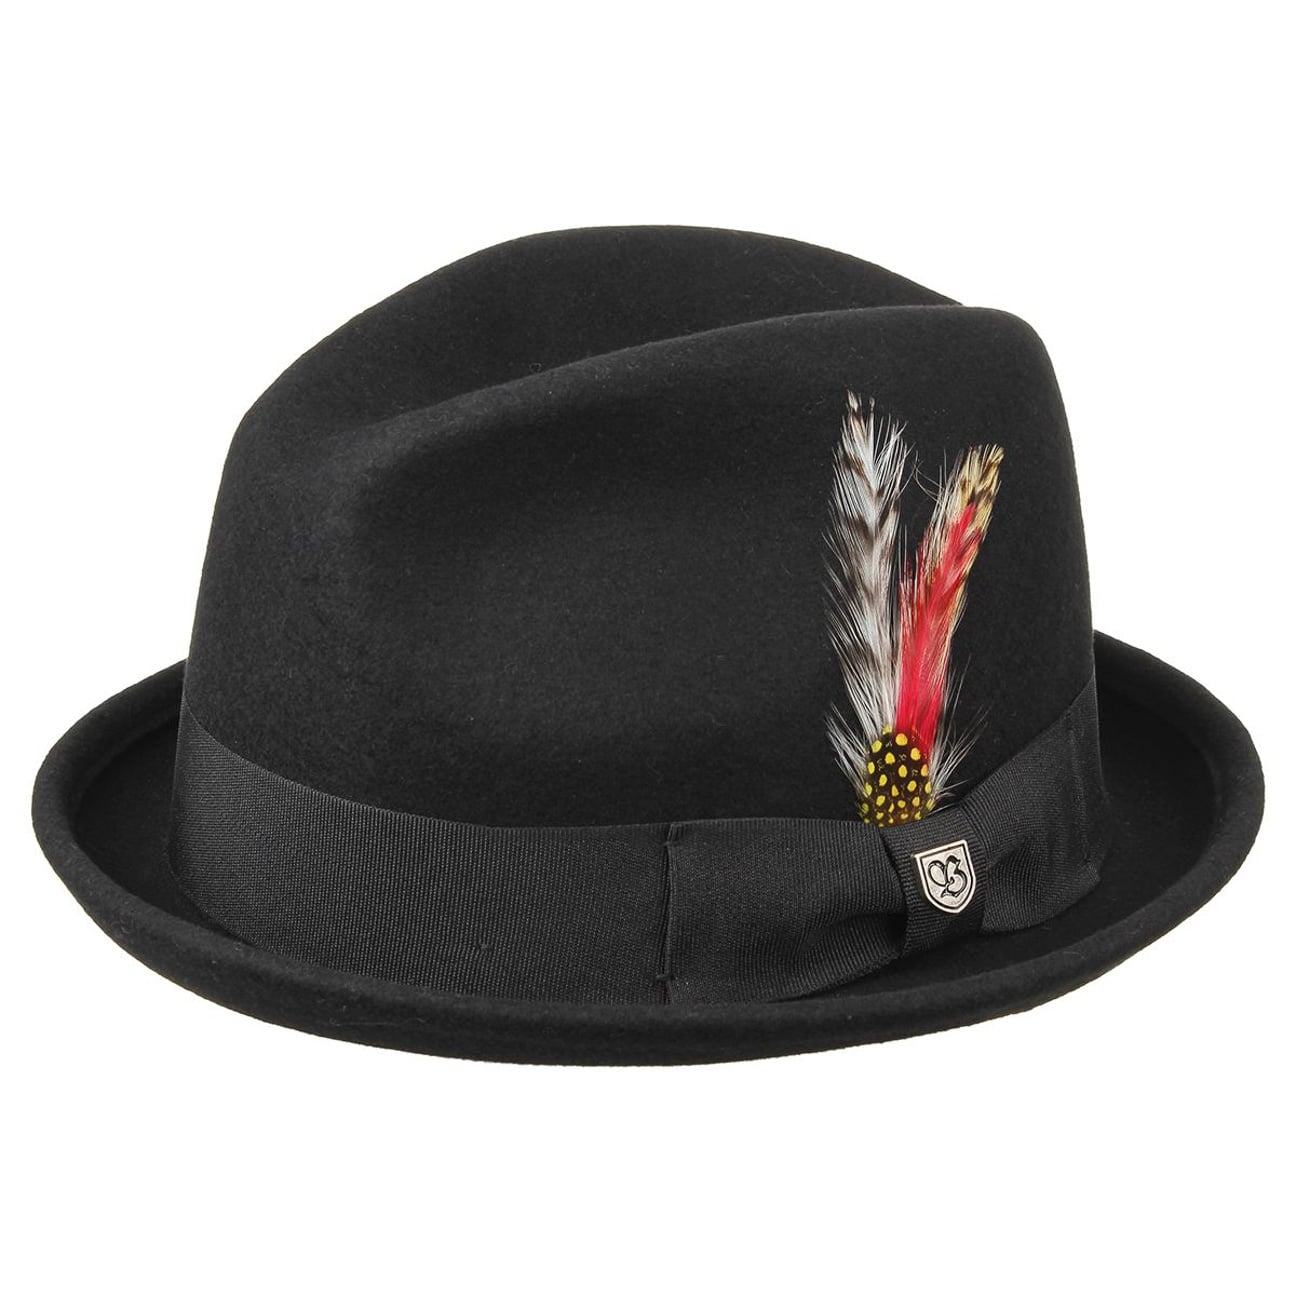 c125467e9ec ... Chapeau Gain Wool Player by Brixton - noir 1 ...